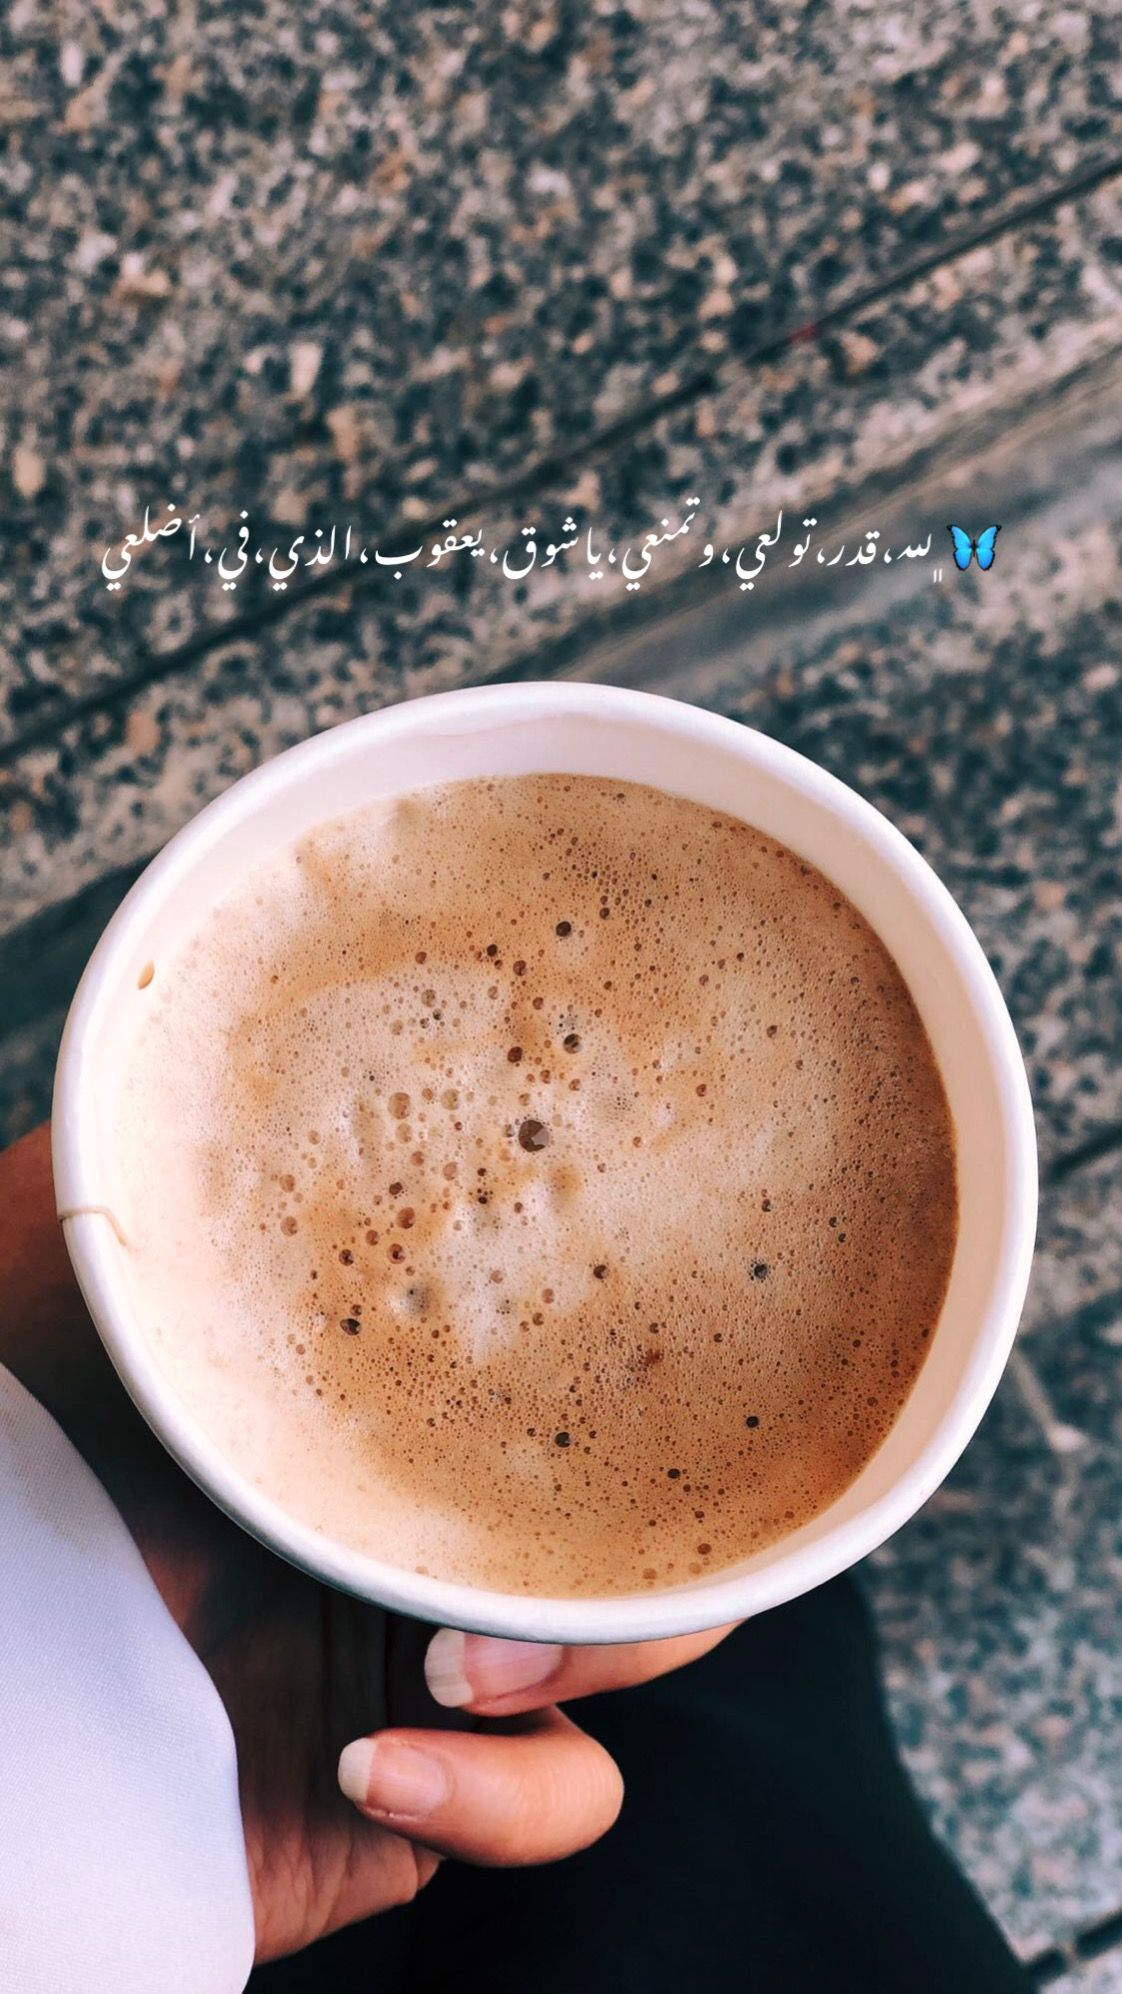 pin by semsem🦋 on ﮼يوميات snapchat quotes coffee love photo